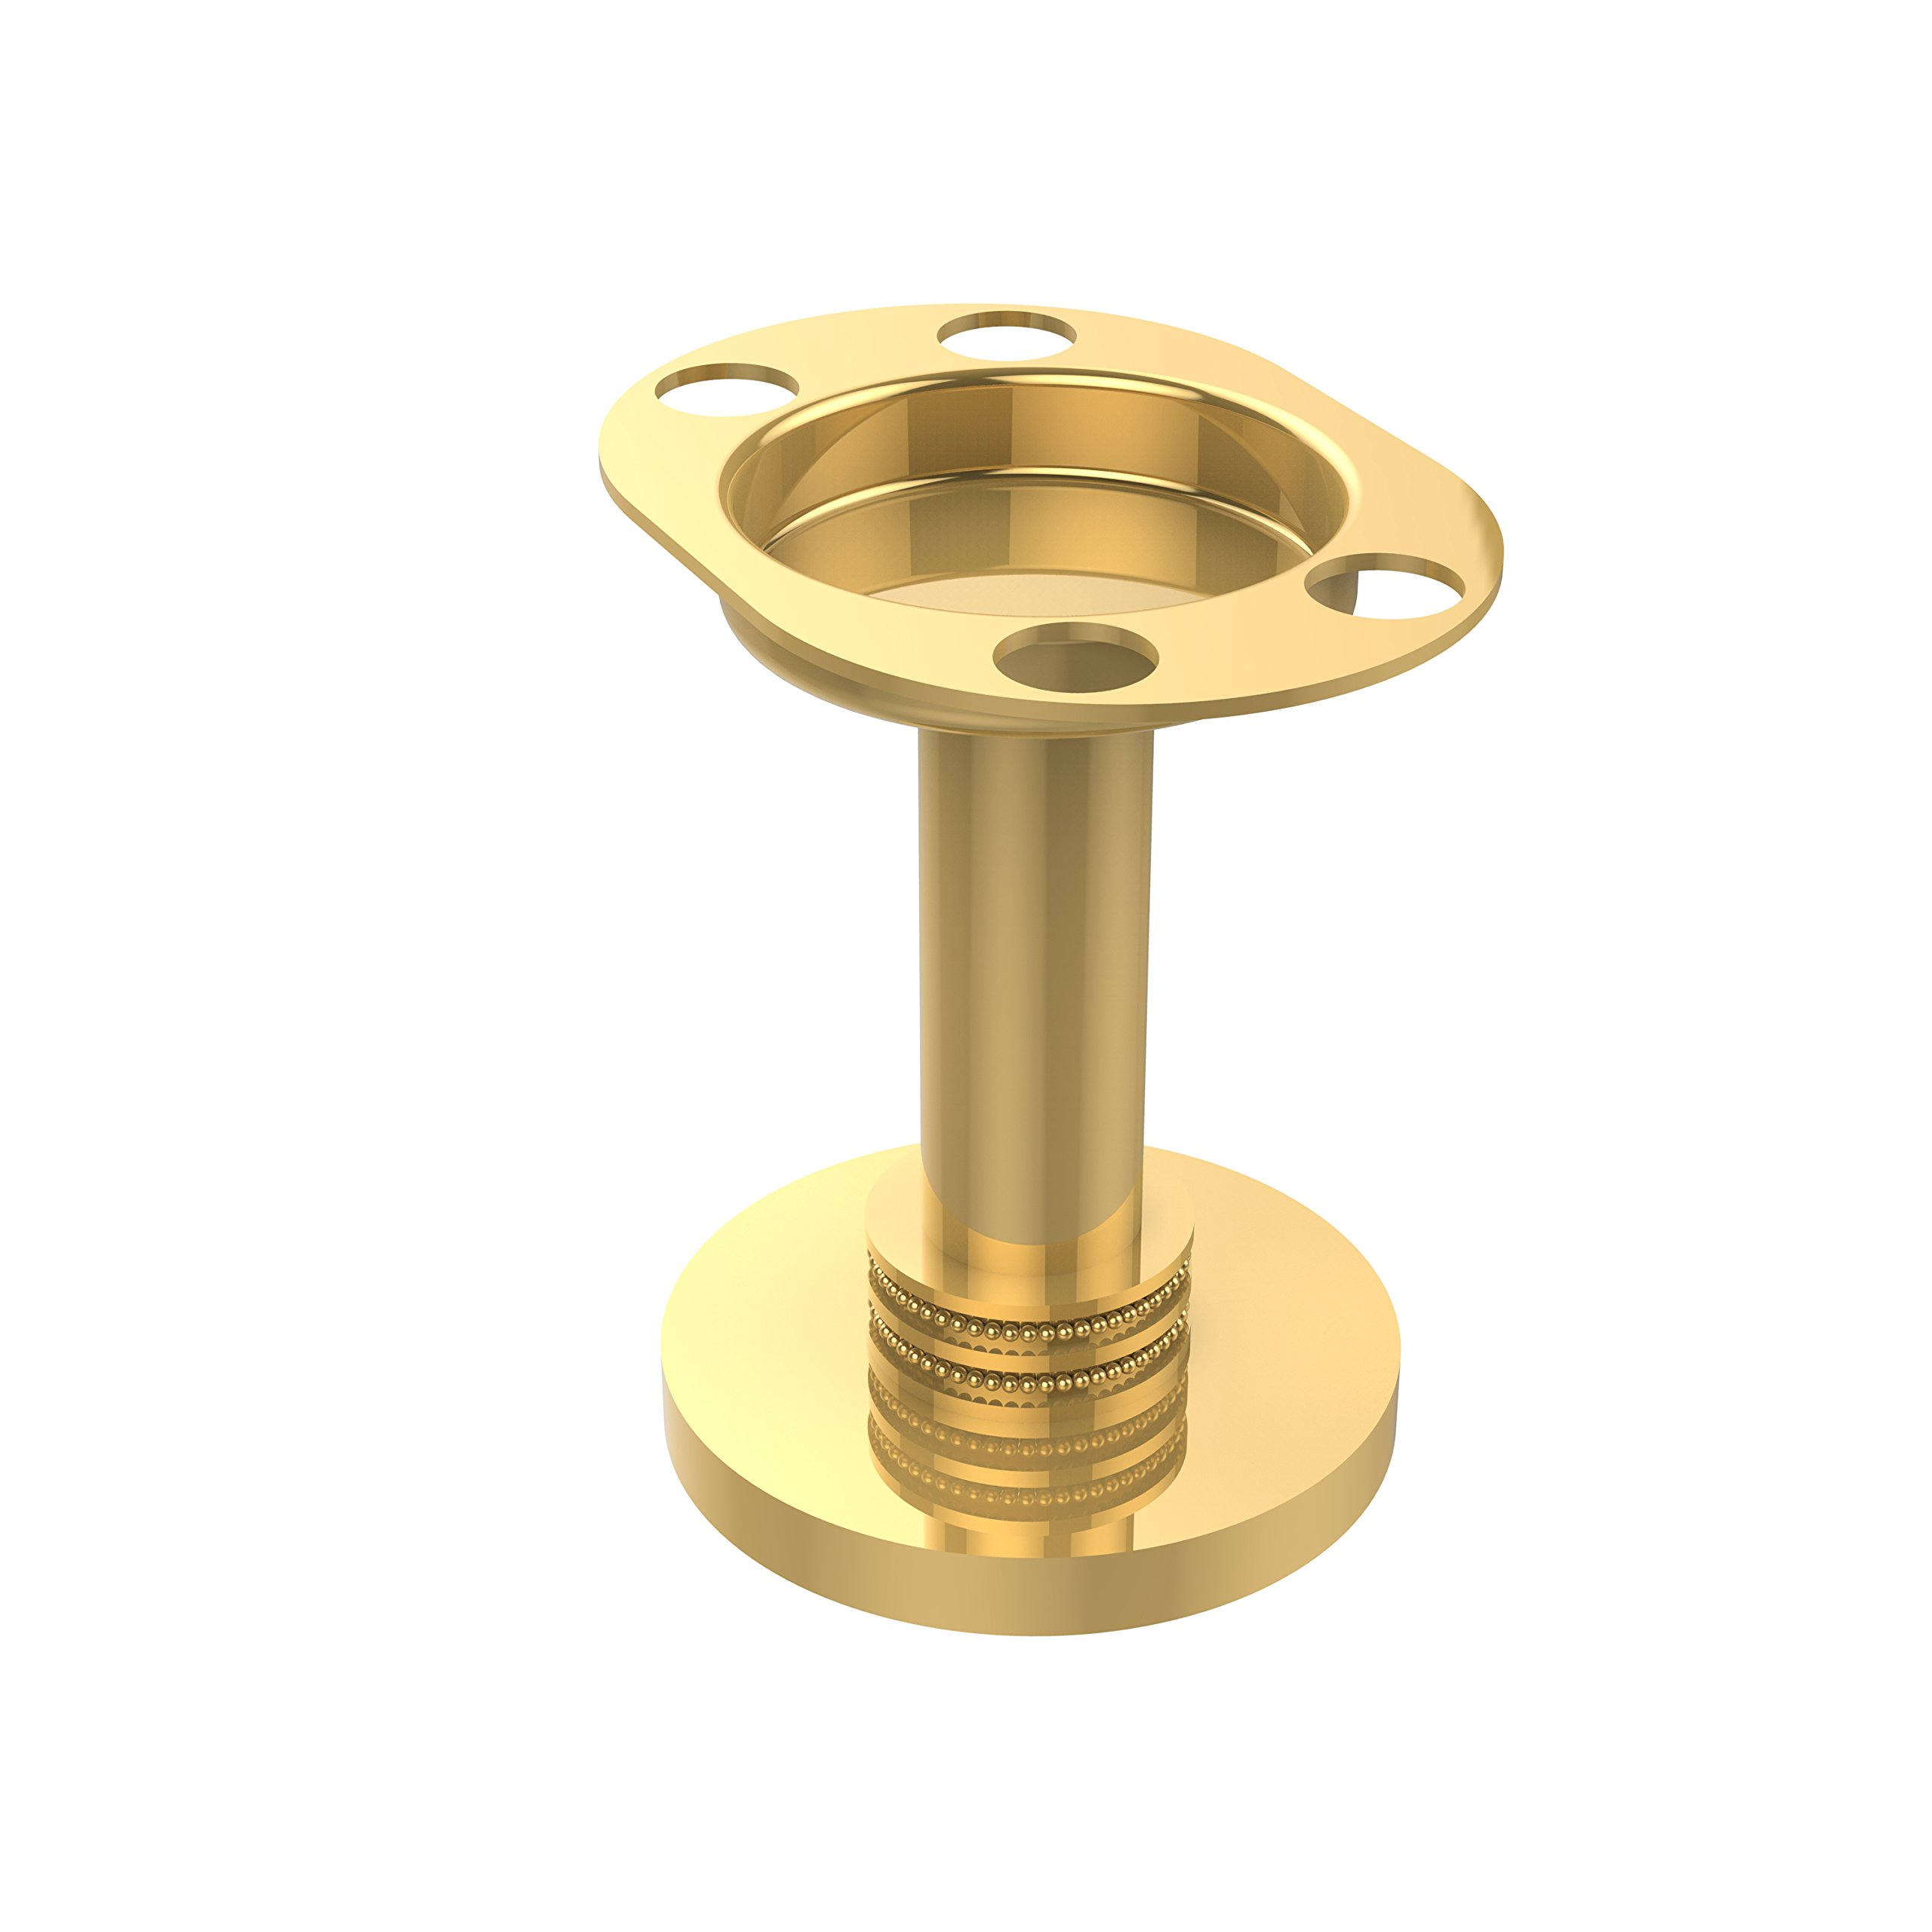 Allied Brass 955D-PB Vanity Top Tumbler and Toothbrush Holder, Polished Brass